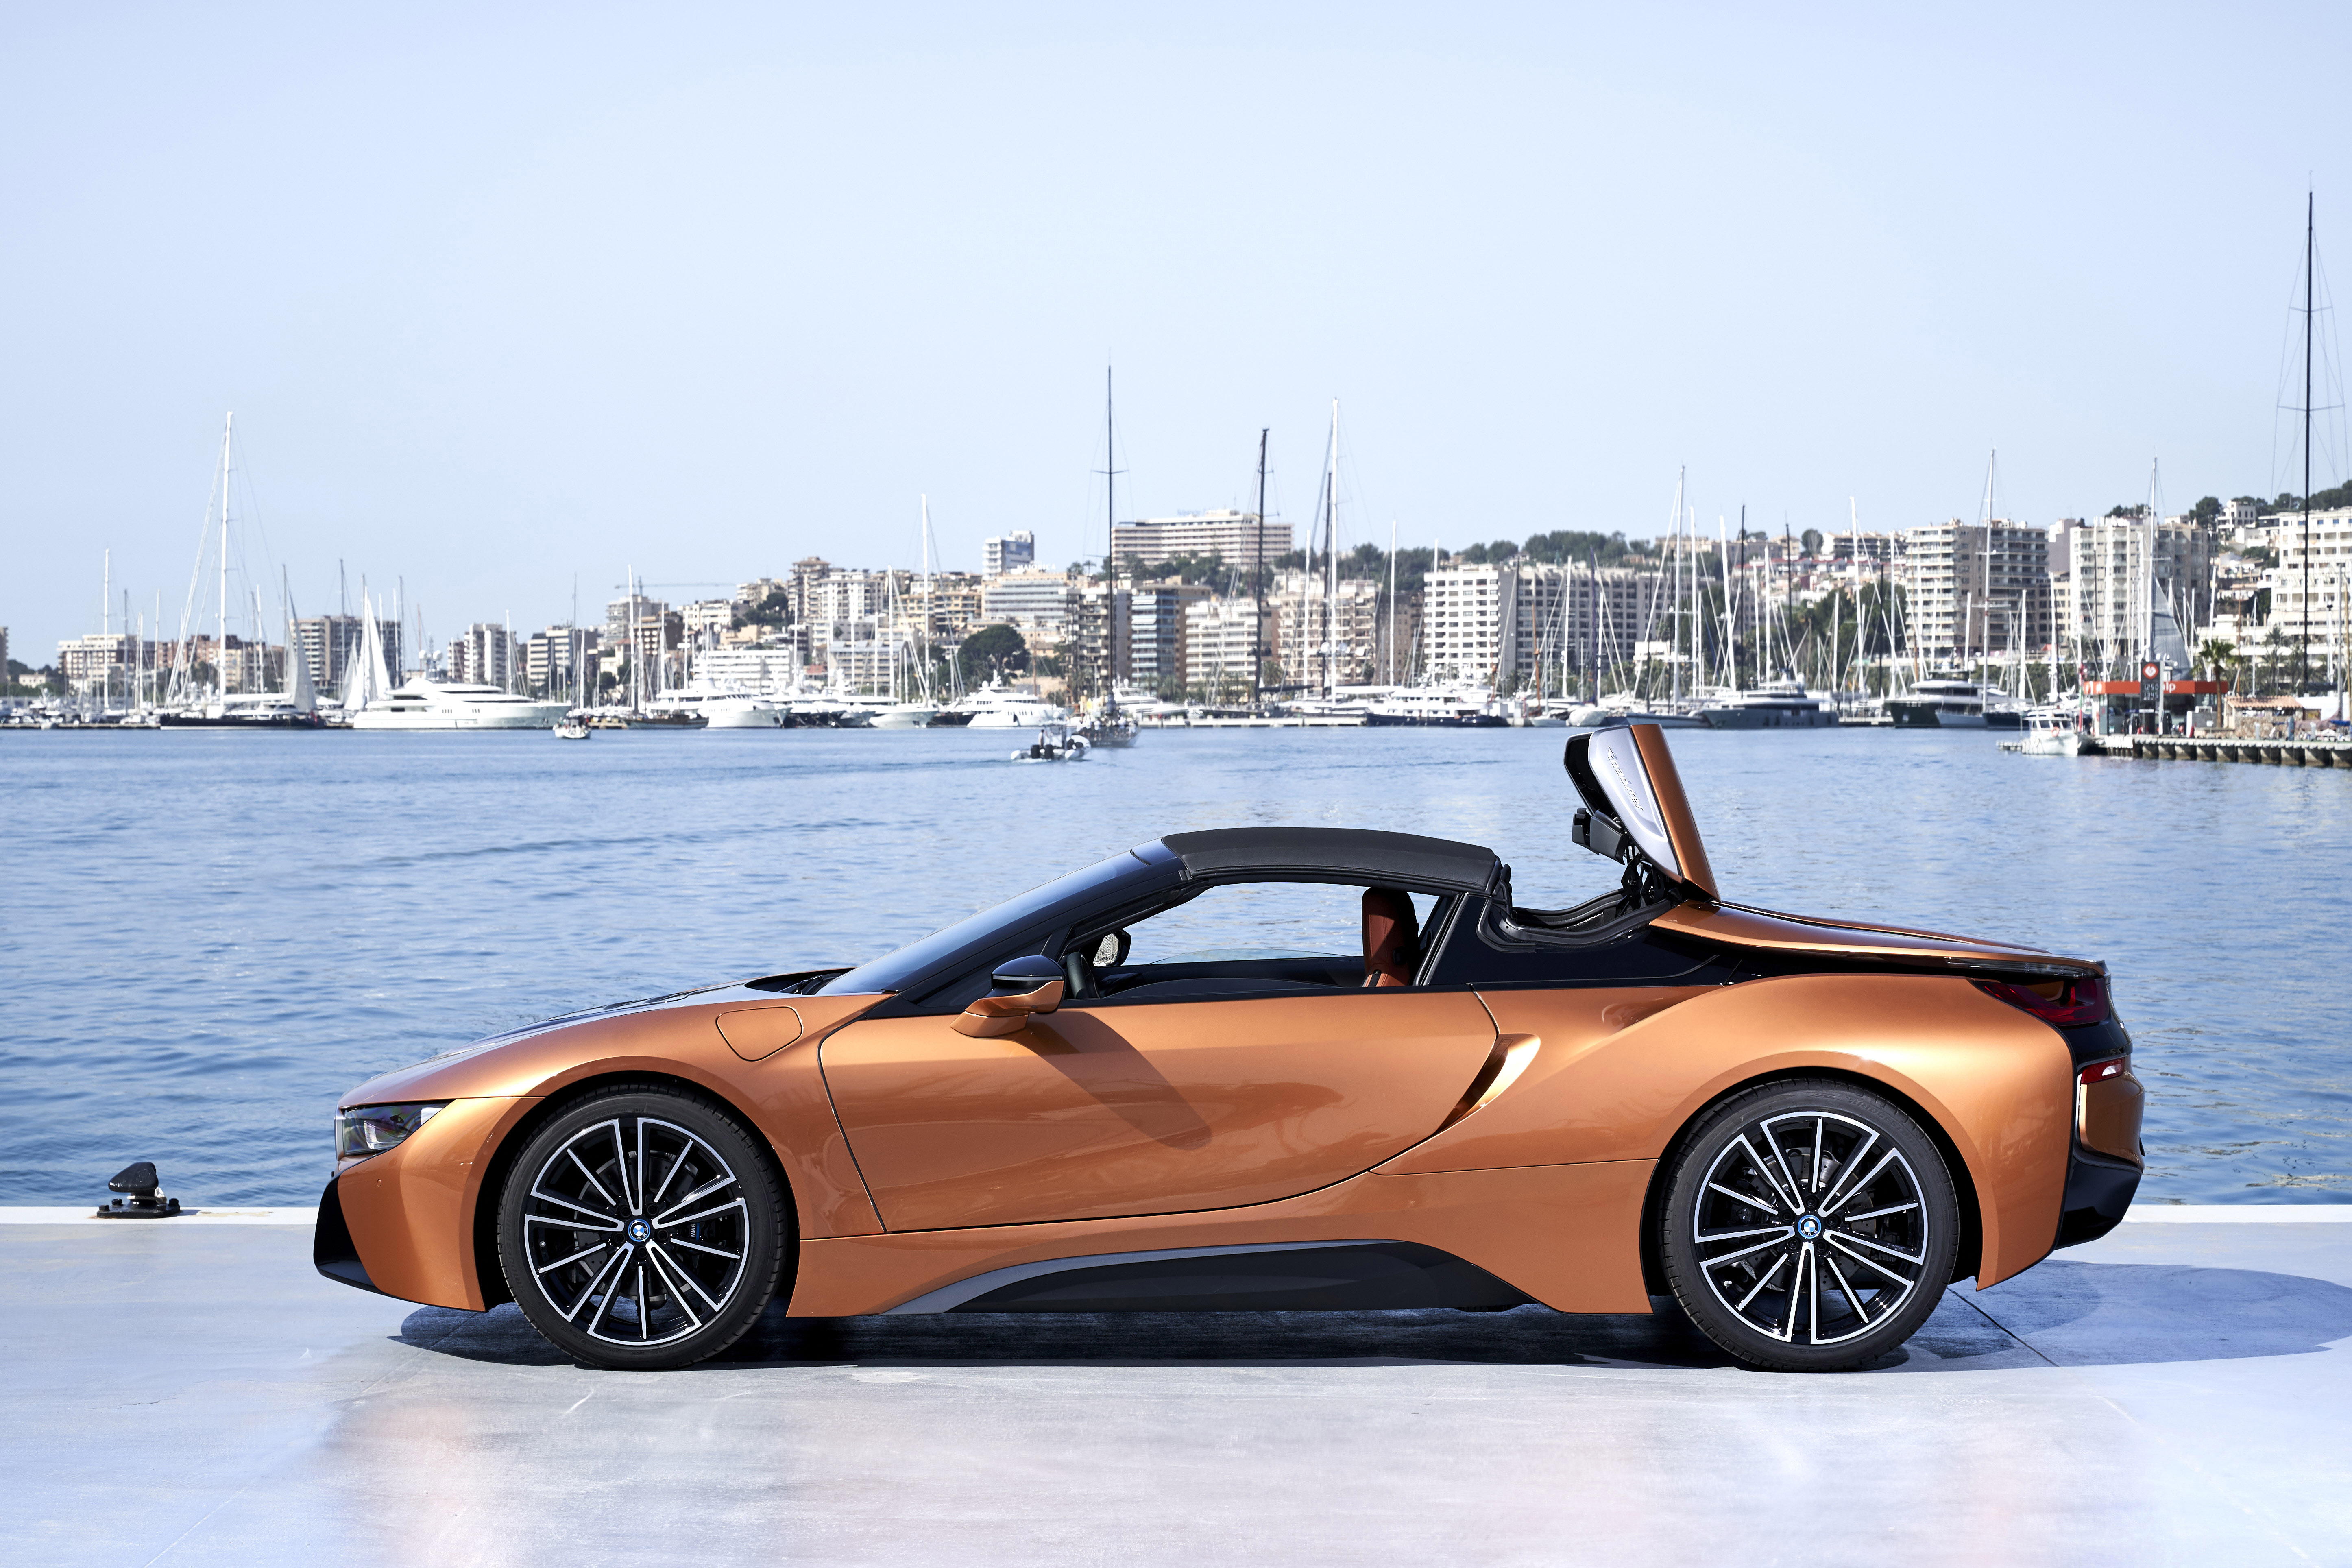 Bmw Malaysia Introduces The First Ever Bmw I8 Roadster Cepsi 2018